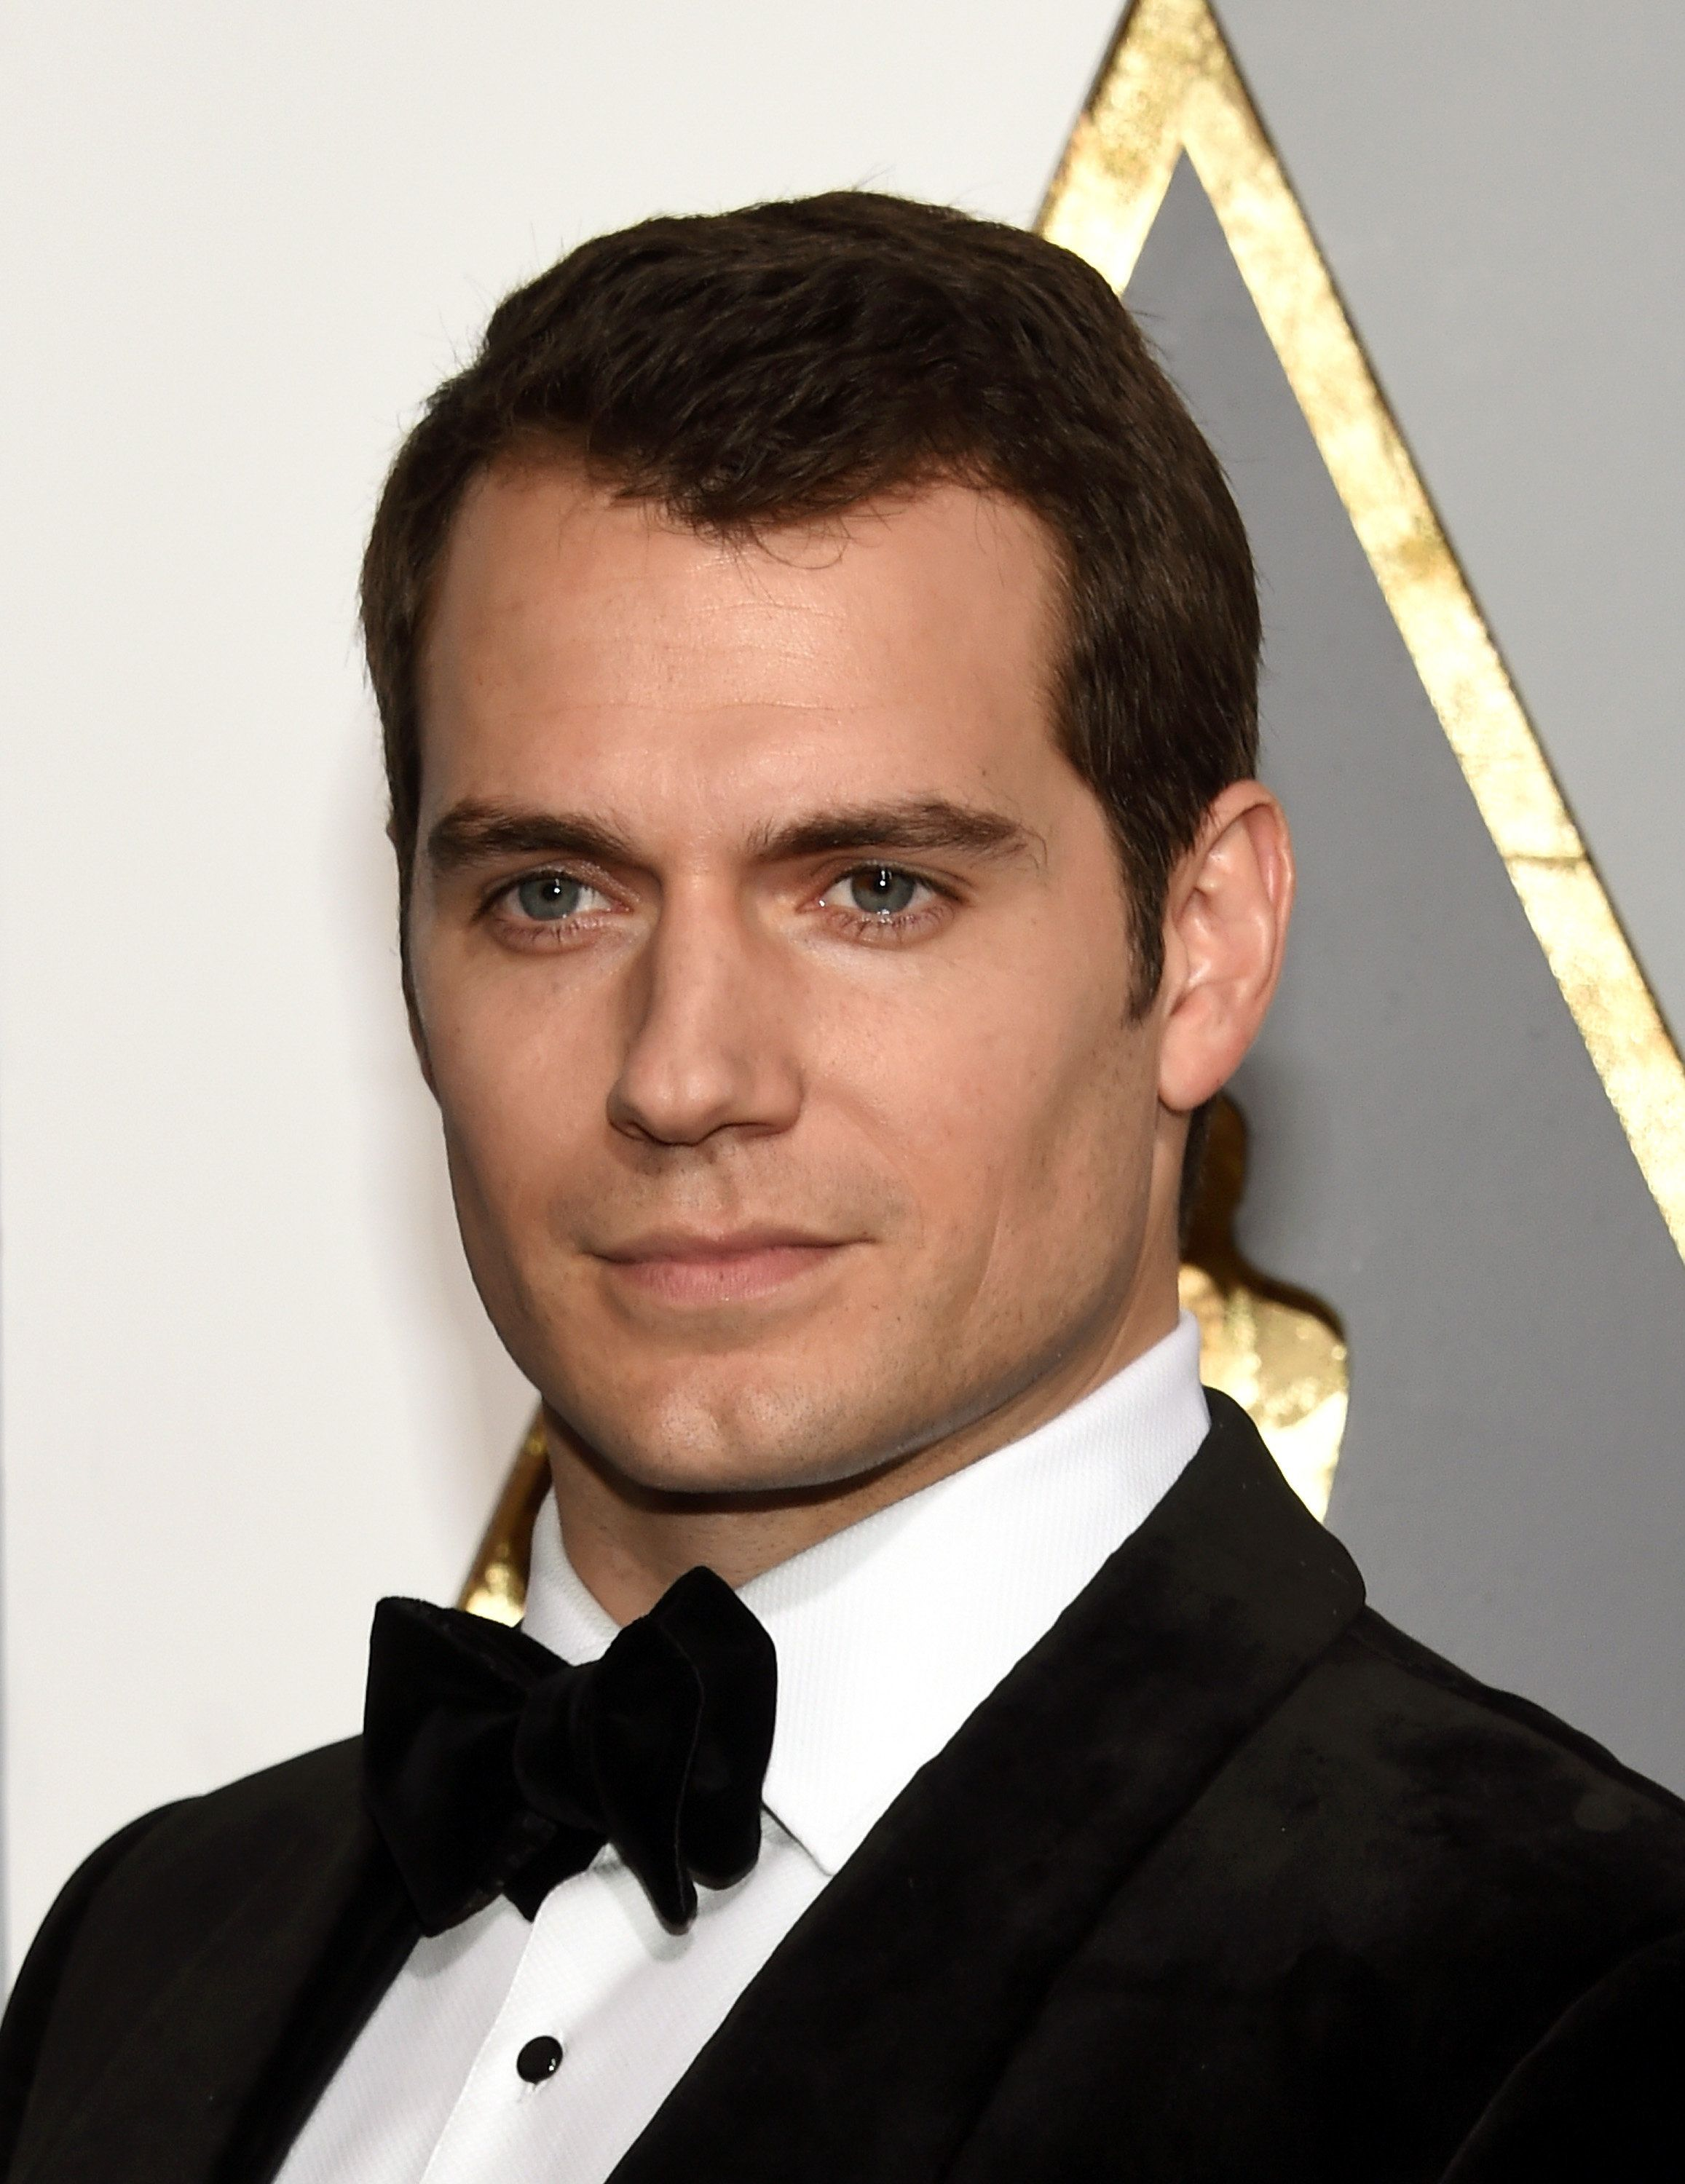 HOLLYWOOD, CA - FEBRUARY 28:  Actor Henry Cavill attends the 88th Annual Academy Awards at Hollywood & Highland Center on February 28, 2016 in Hollywood, California.  (Photo by Ethan Miller/Getty Images)